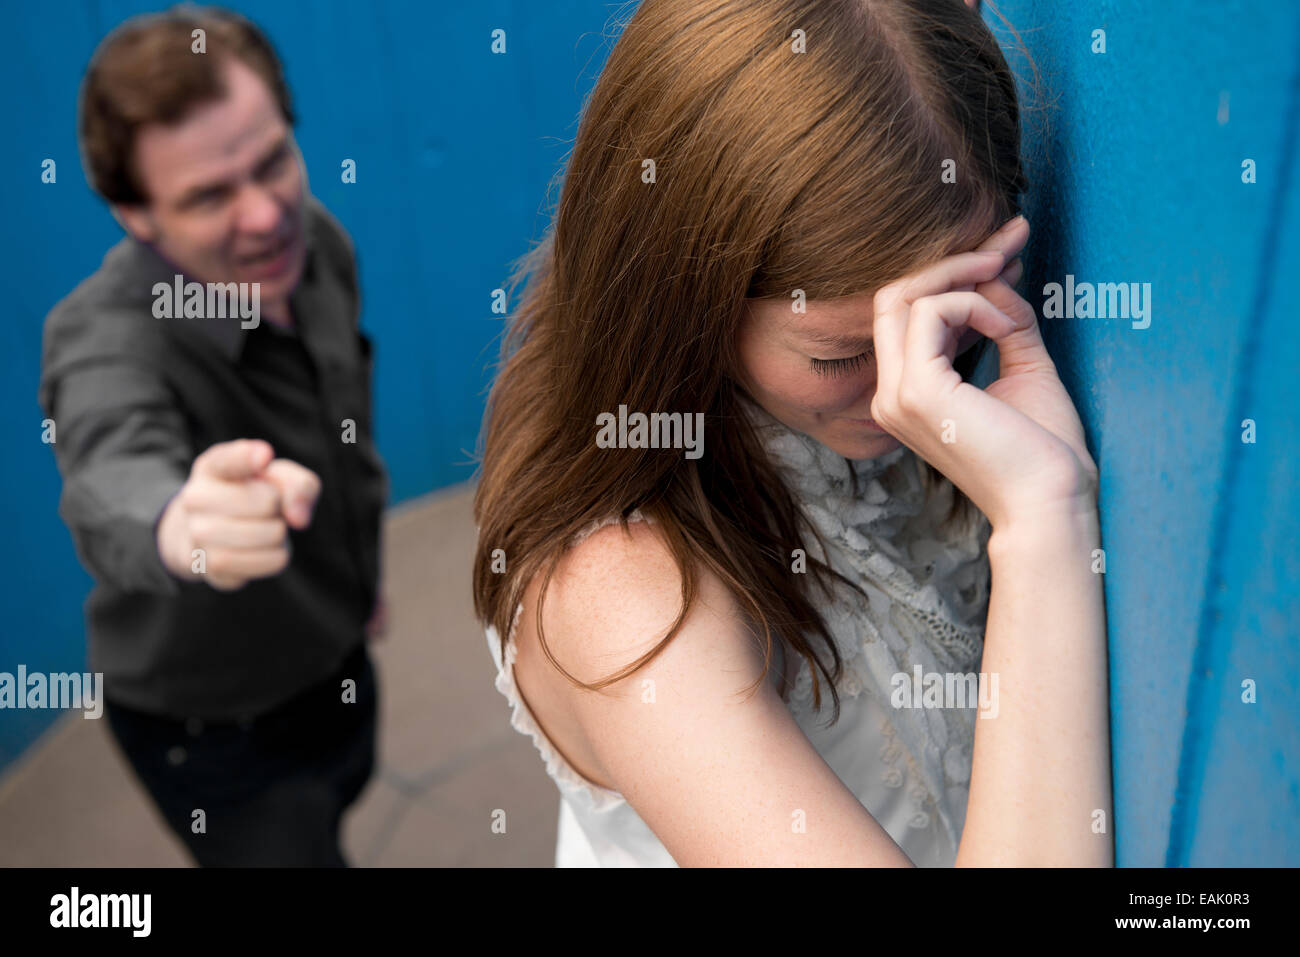 Tearful young woman in the foreground, with aggressive man, lower down in shot behind her. - Stock Image